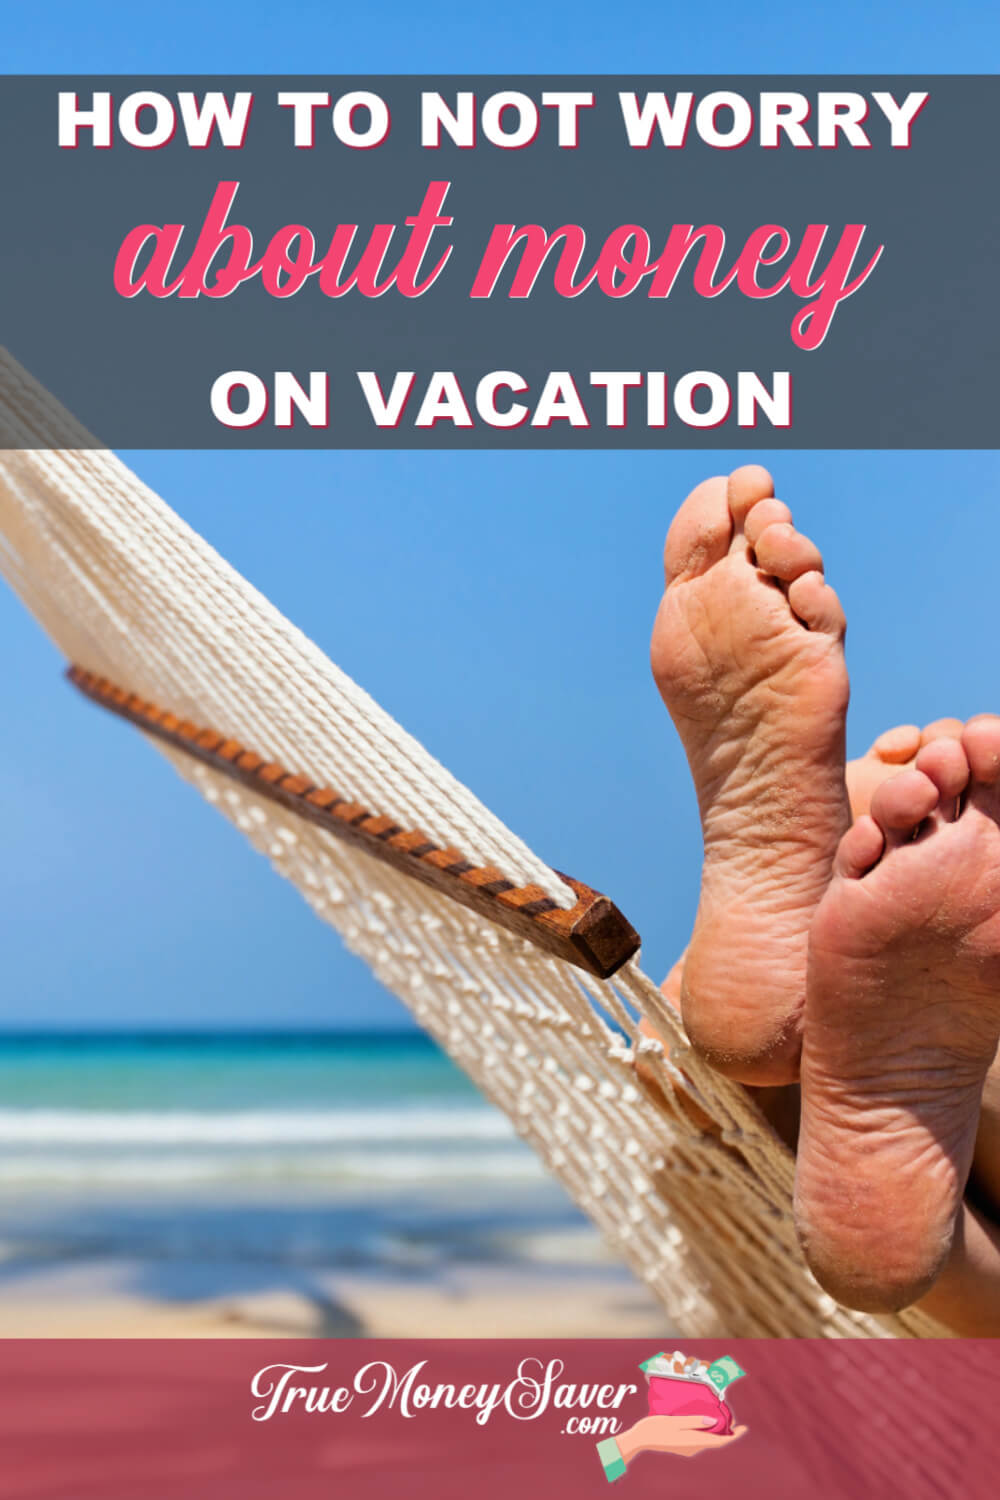 How To Have A Fun Vacation Without Worrying About Money